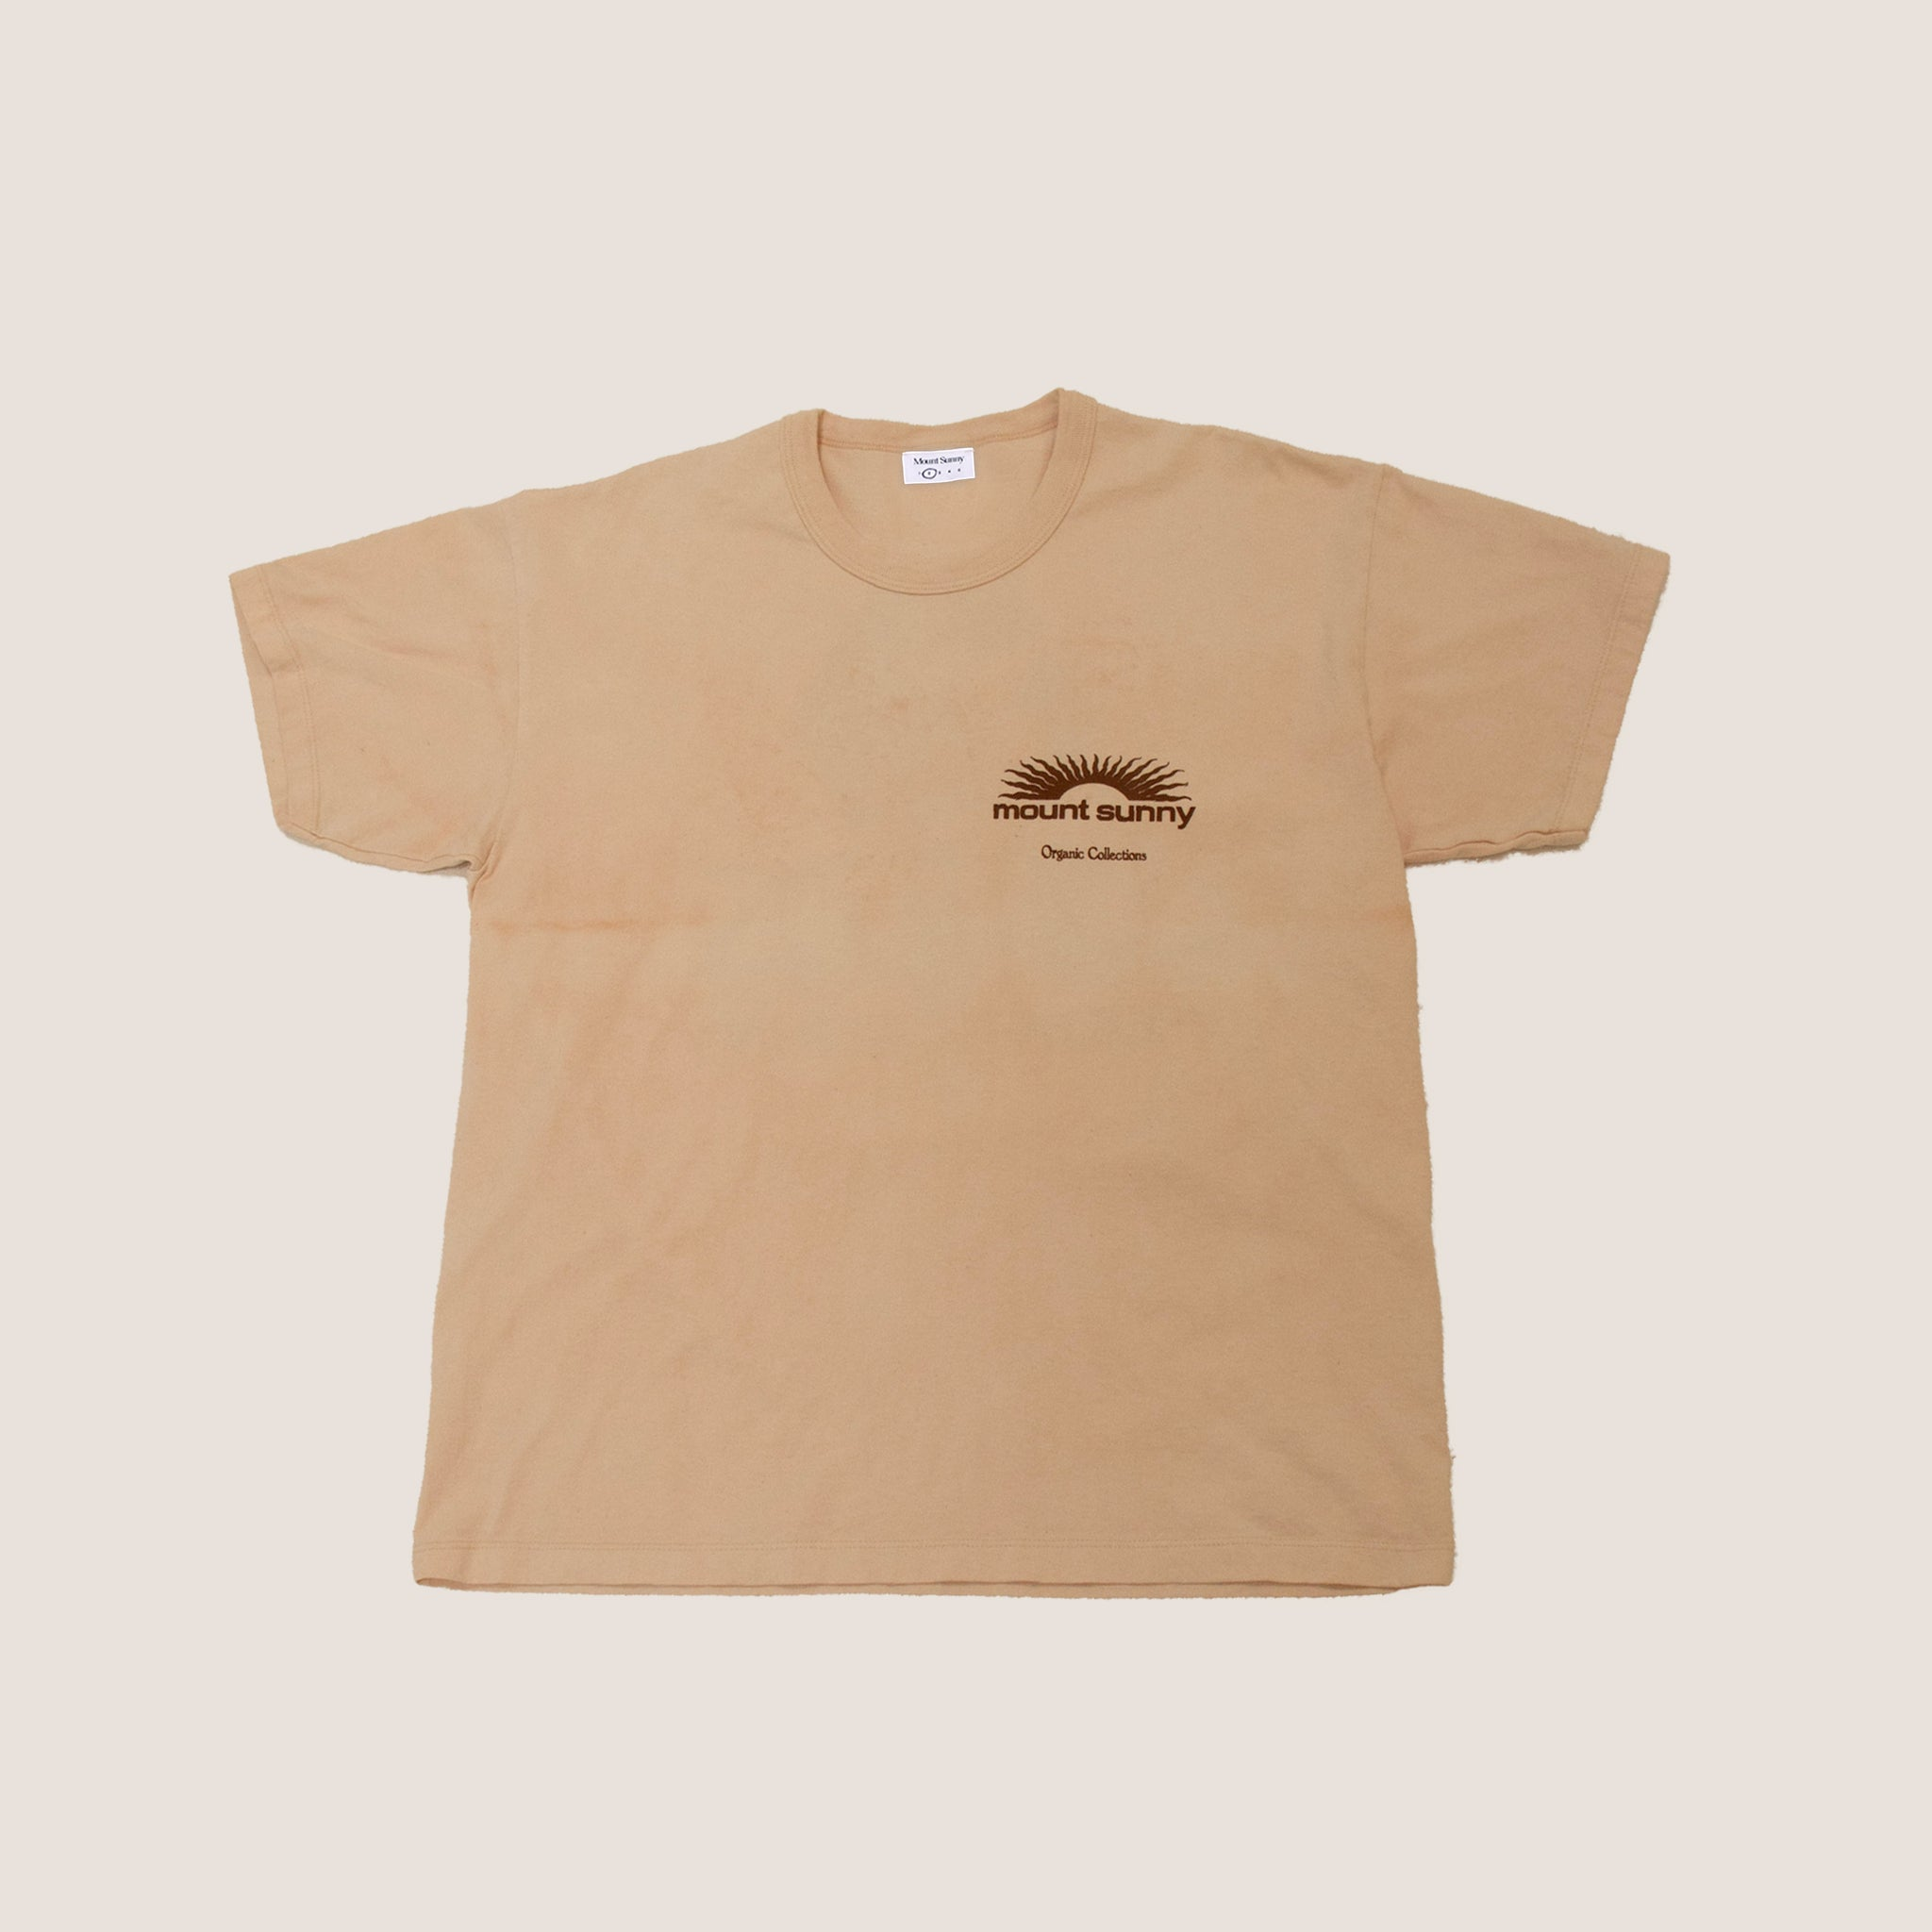 Produce Tee - Avocado